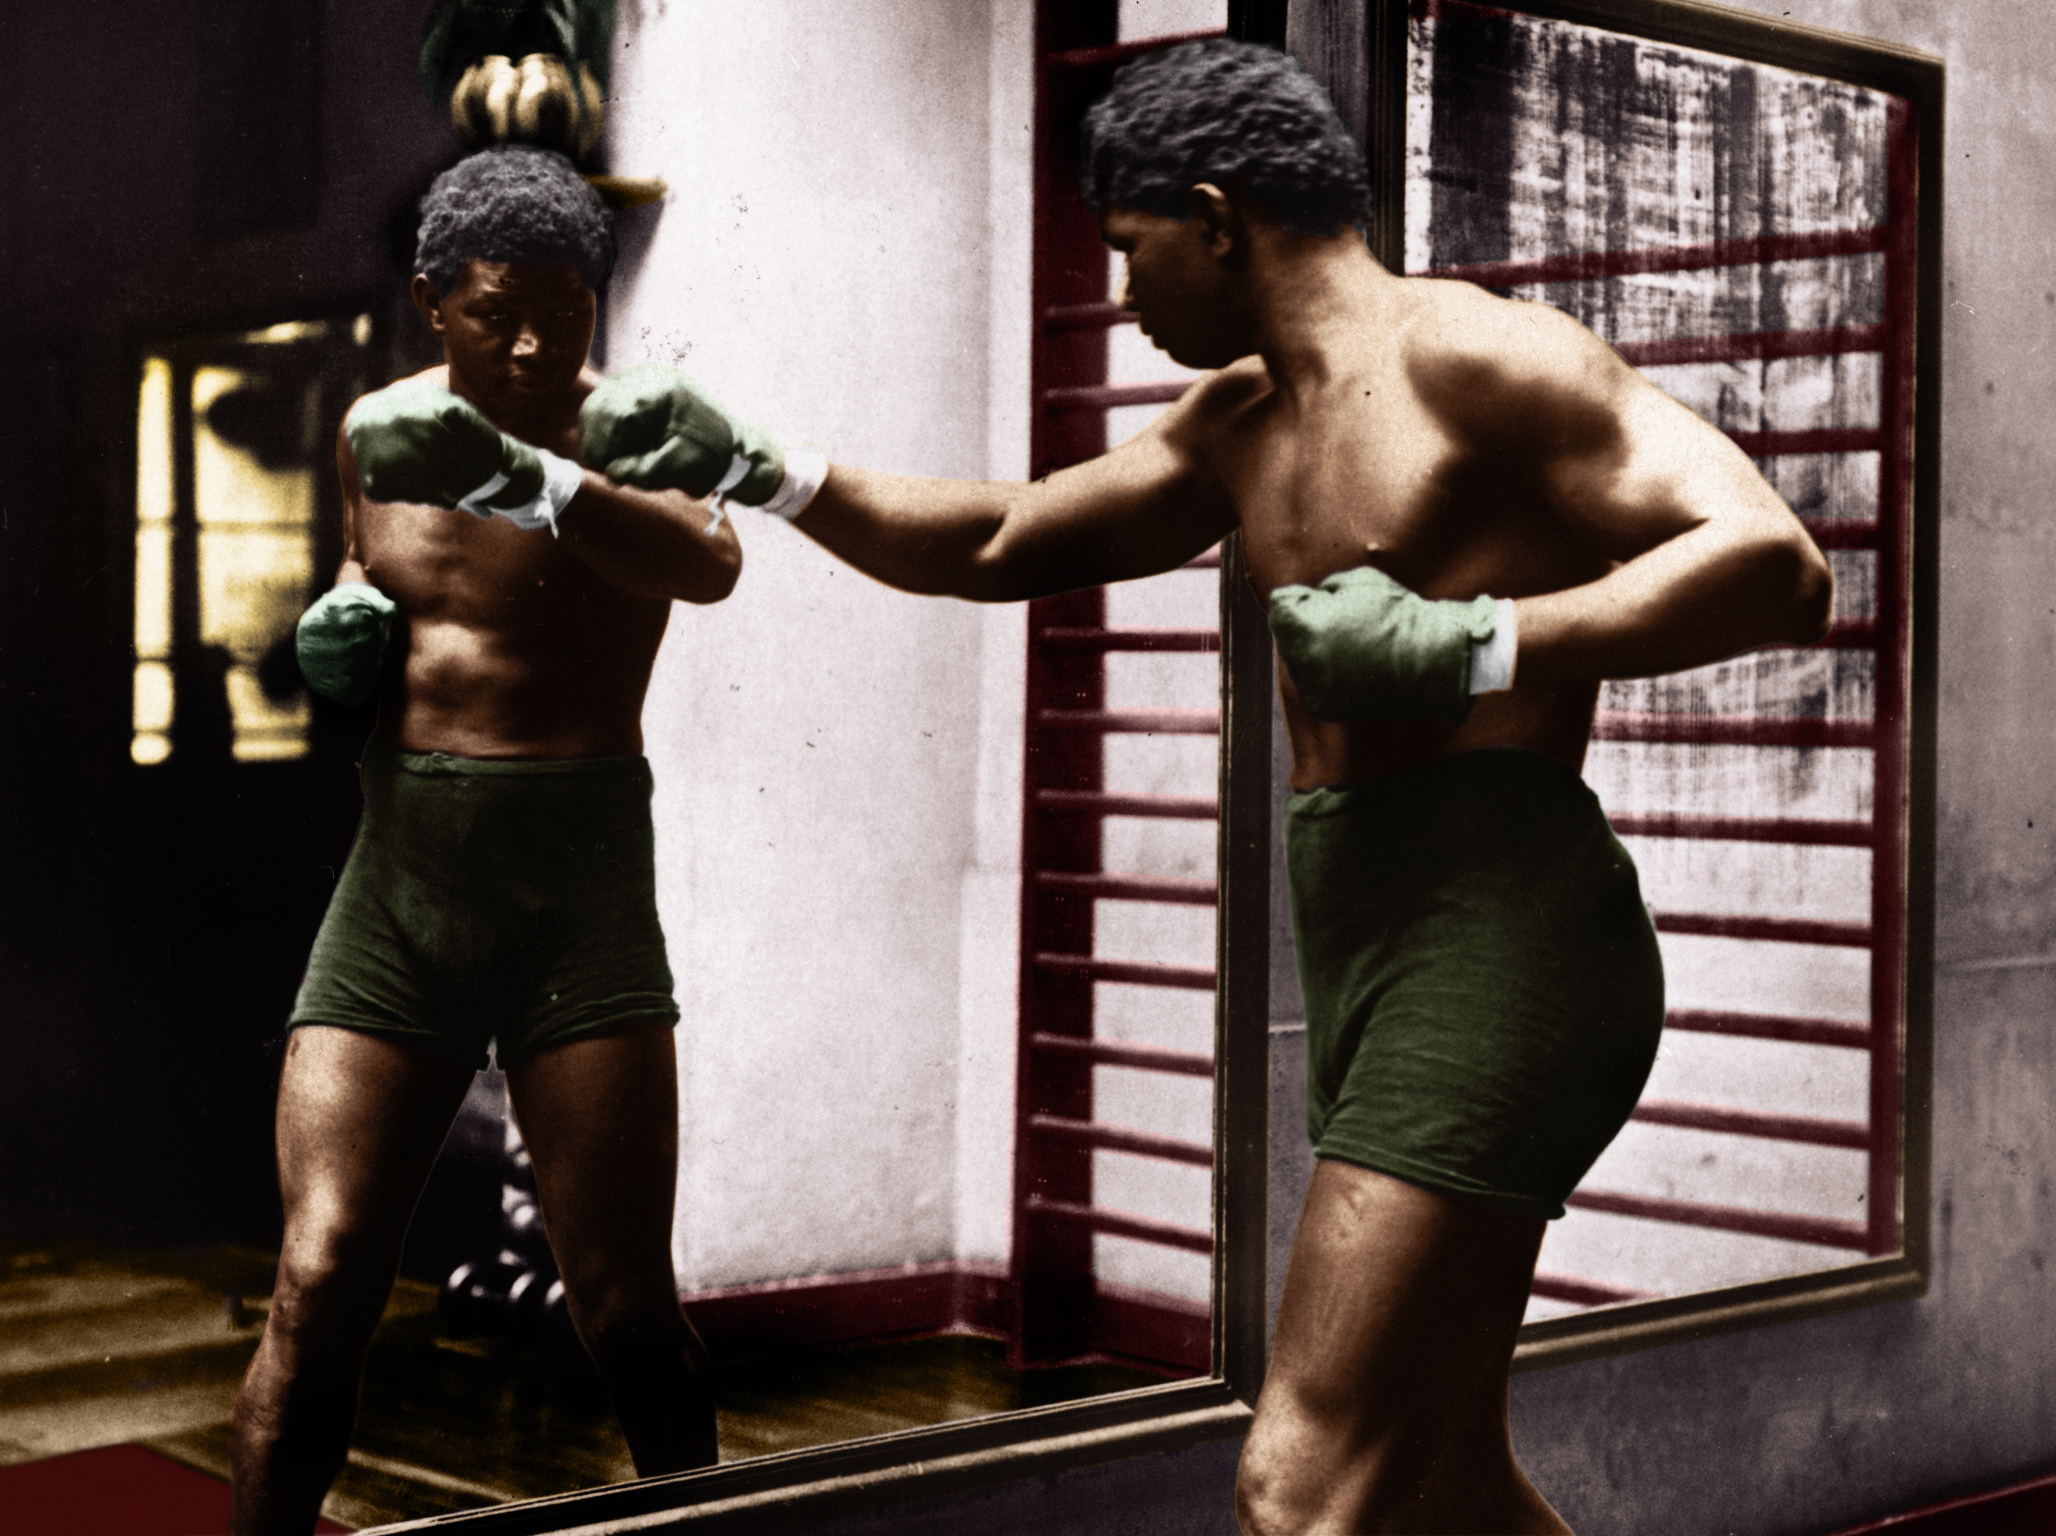 The Battling Siki 1922 - Colourized by Colm Brennan 2019. Twitter: @colmgbrennan